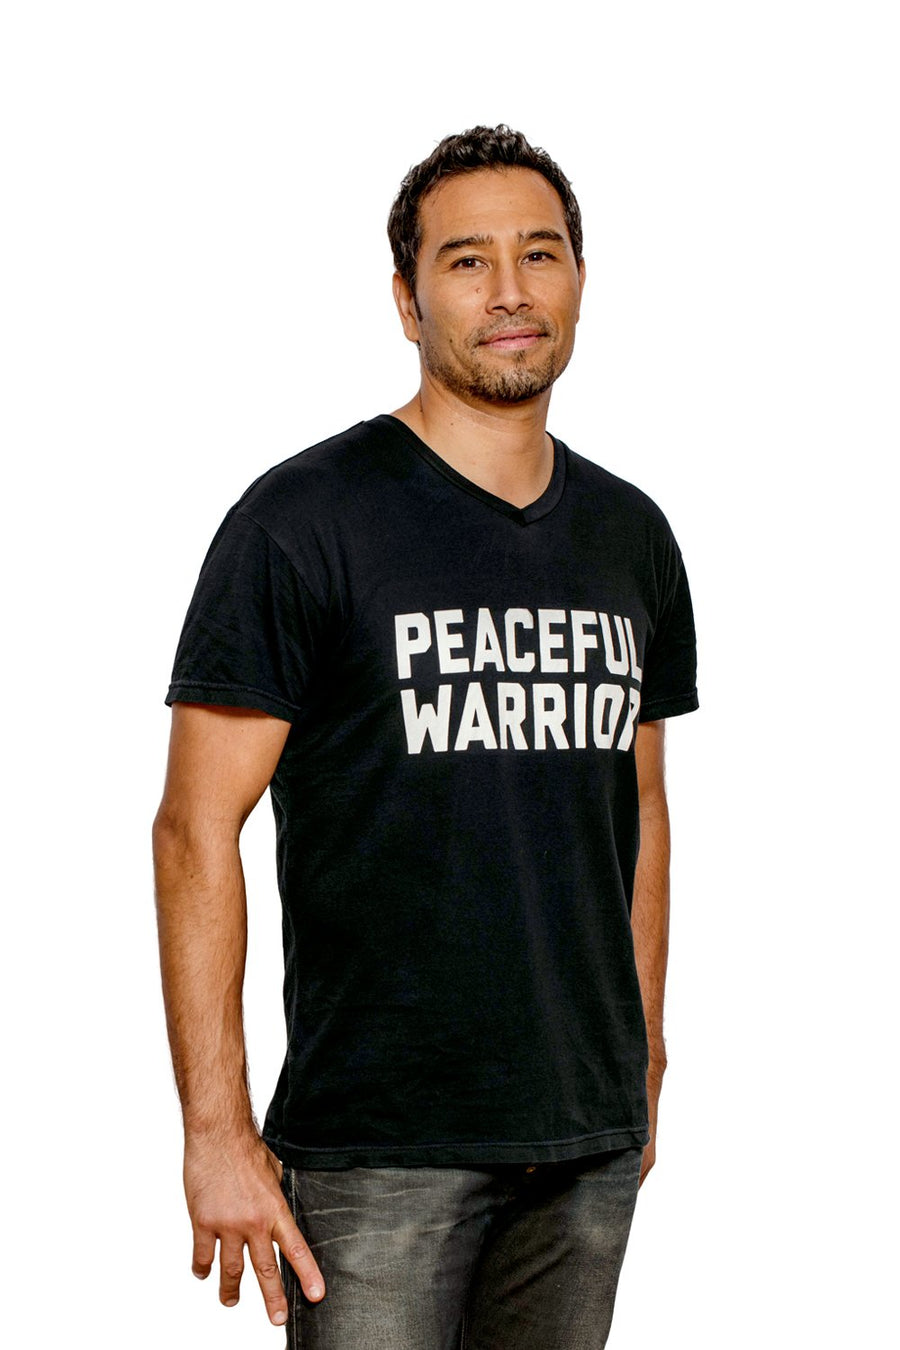 Peaceful Warrior Unisex V-Neck Tee Black